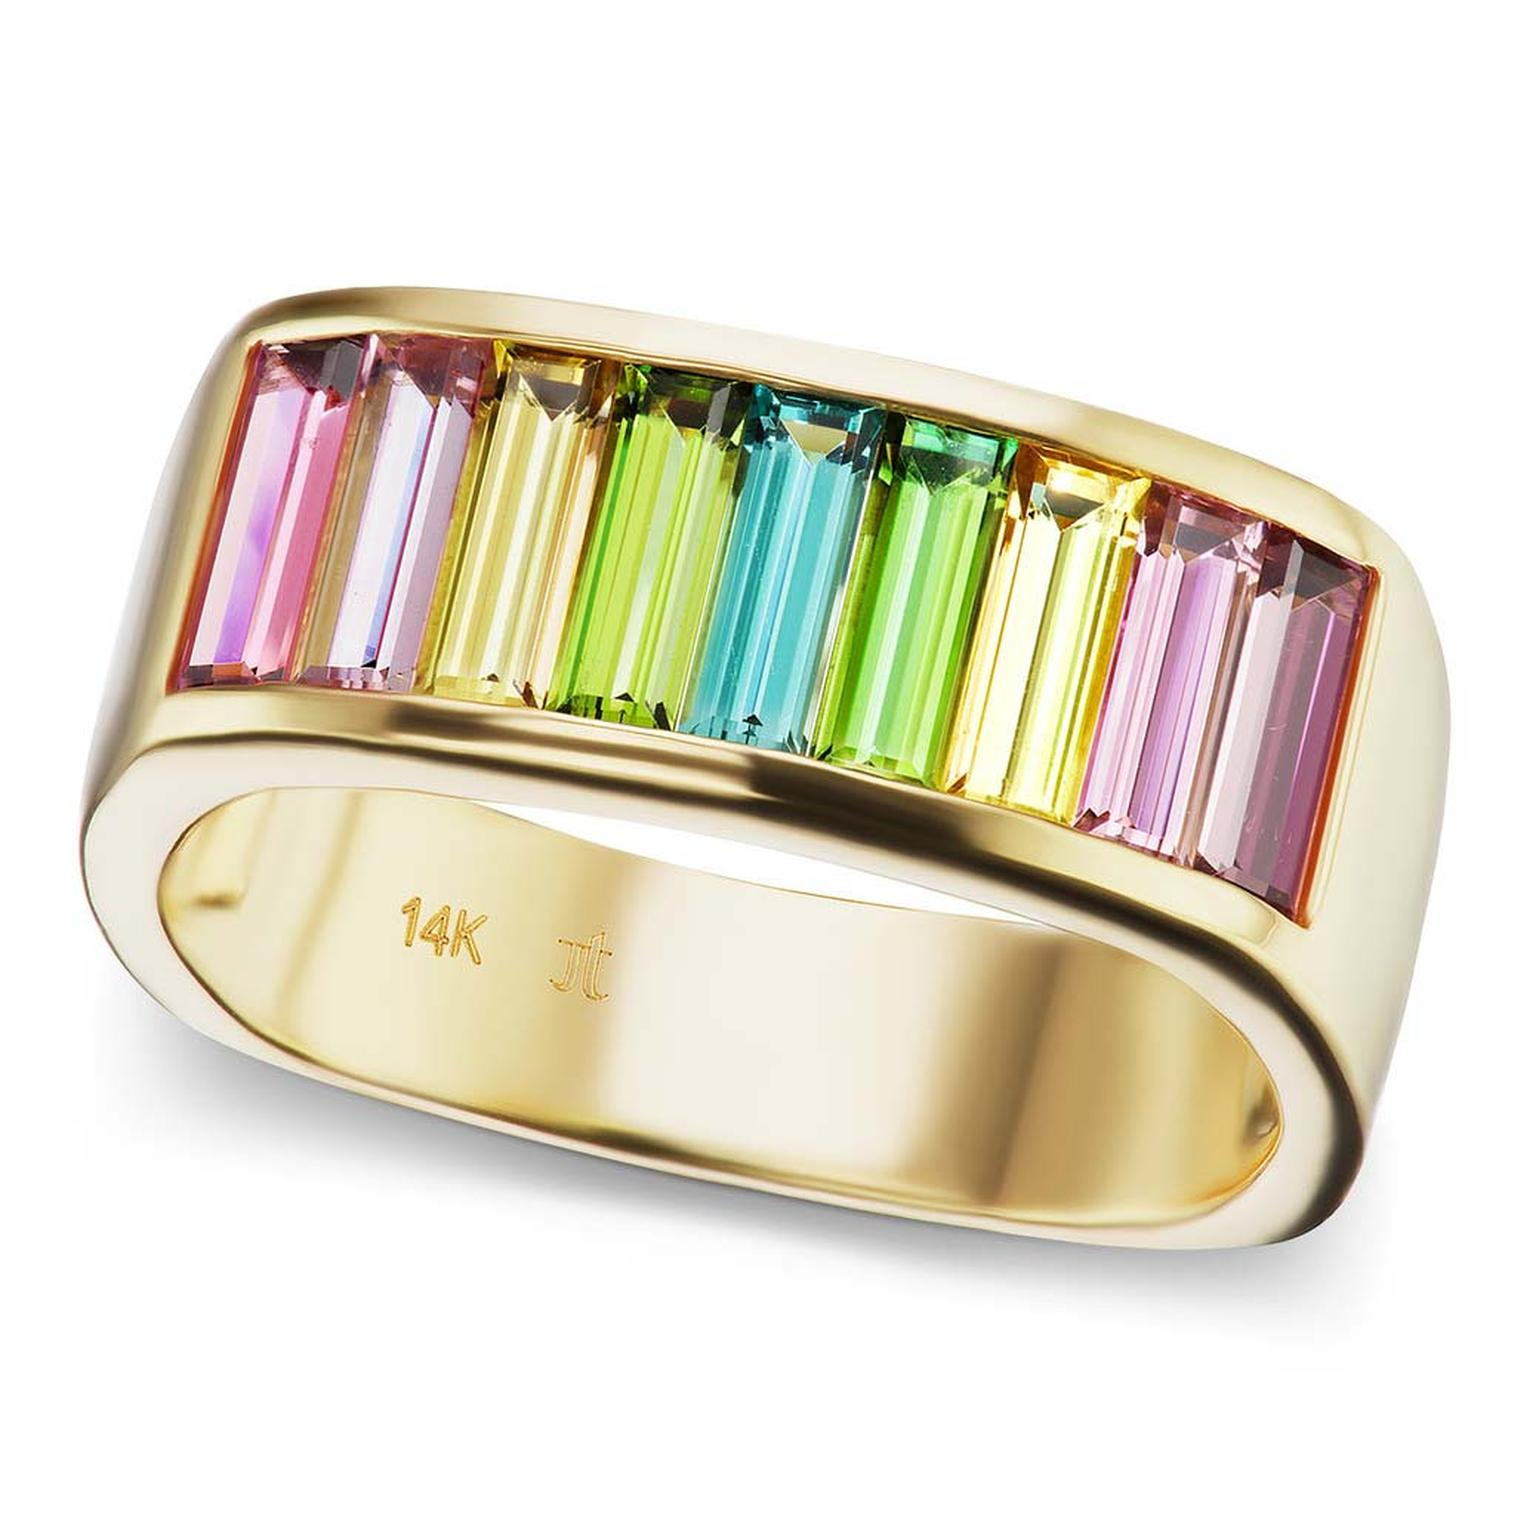 Jane Taylor Ombre ring